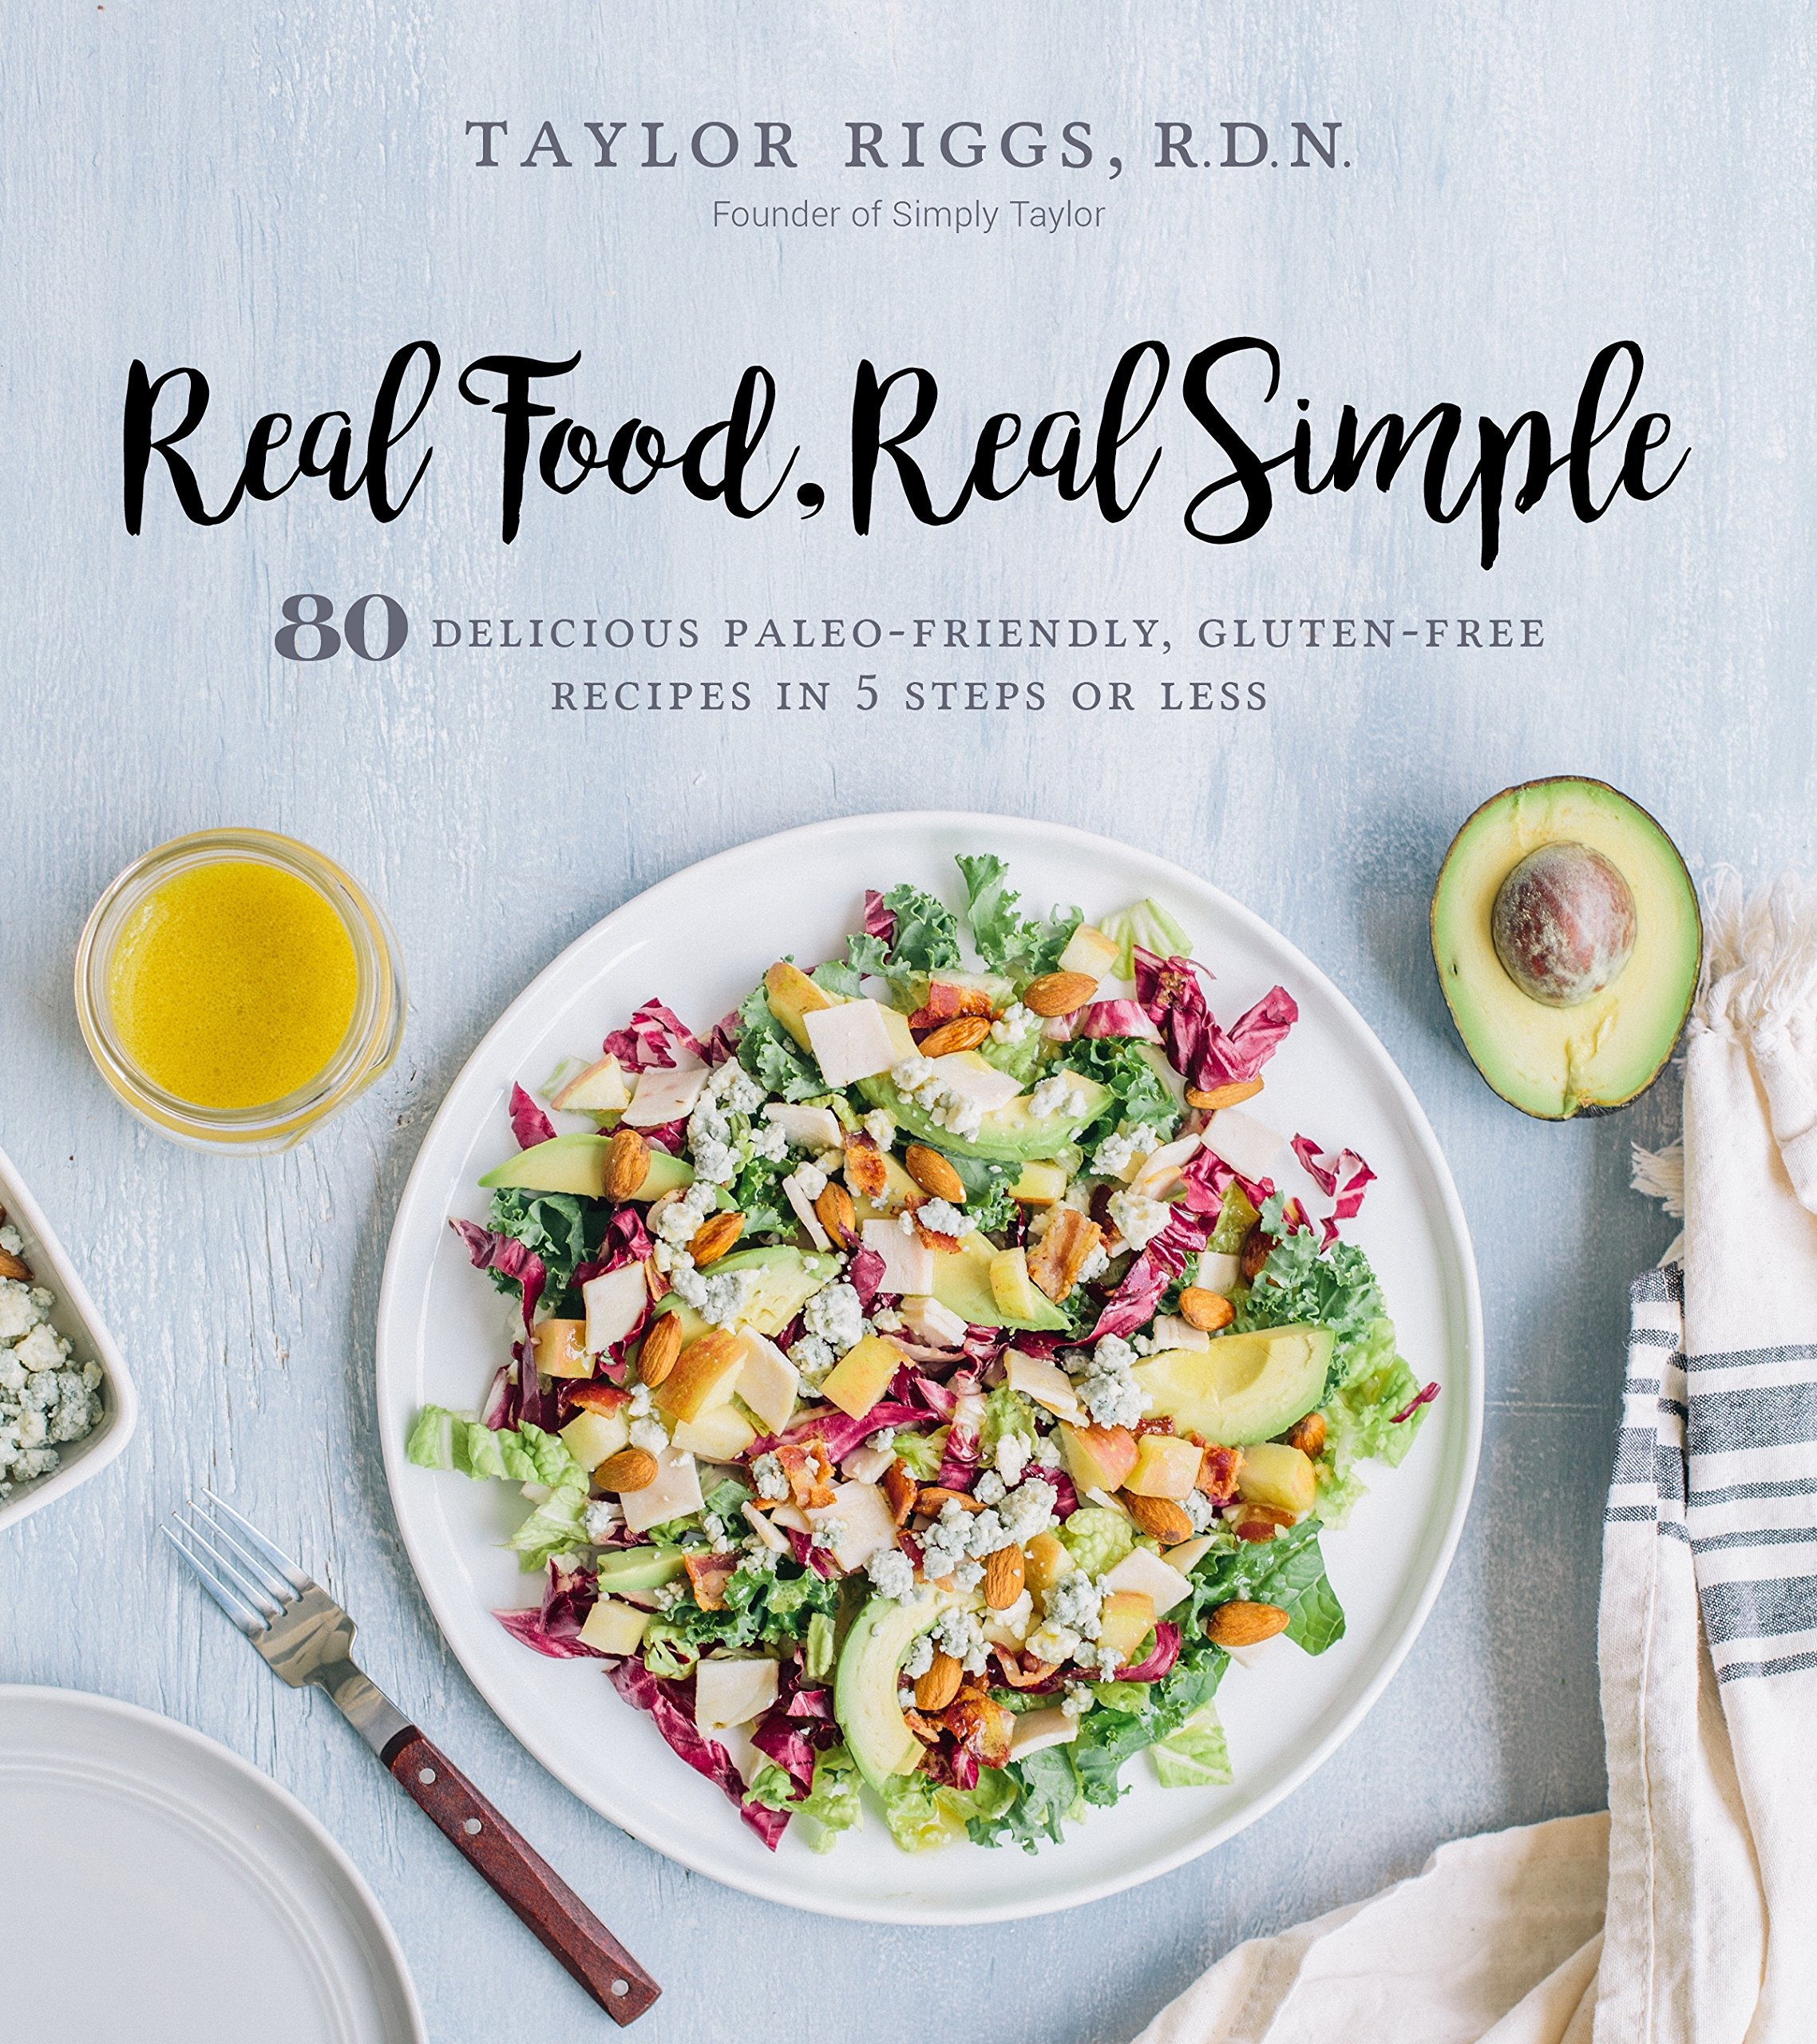 Real food real simple 80 delicious paleo friendly gluten free real food real simple 80 delicious paleo friendly gluten free recipes in 5 steps or less taylor riggs 9781624143373 amazon books forumfinder Images